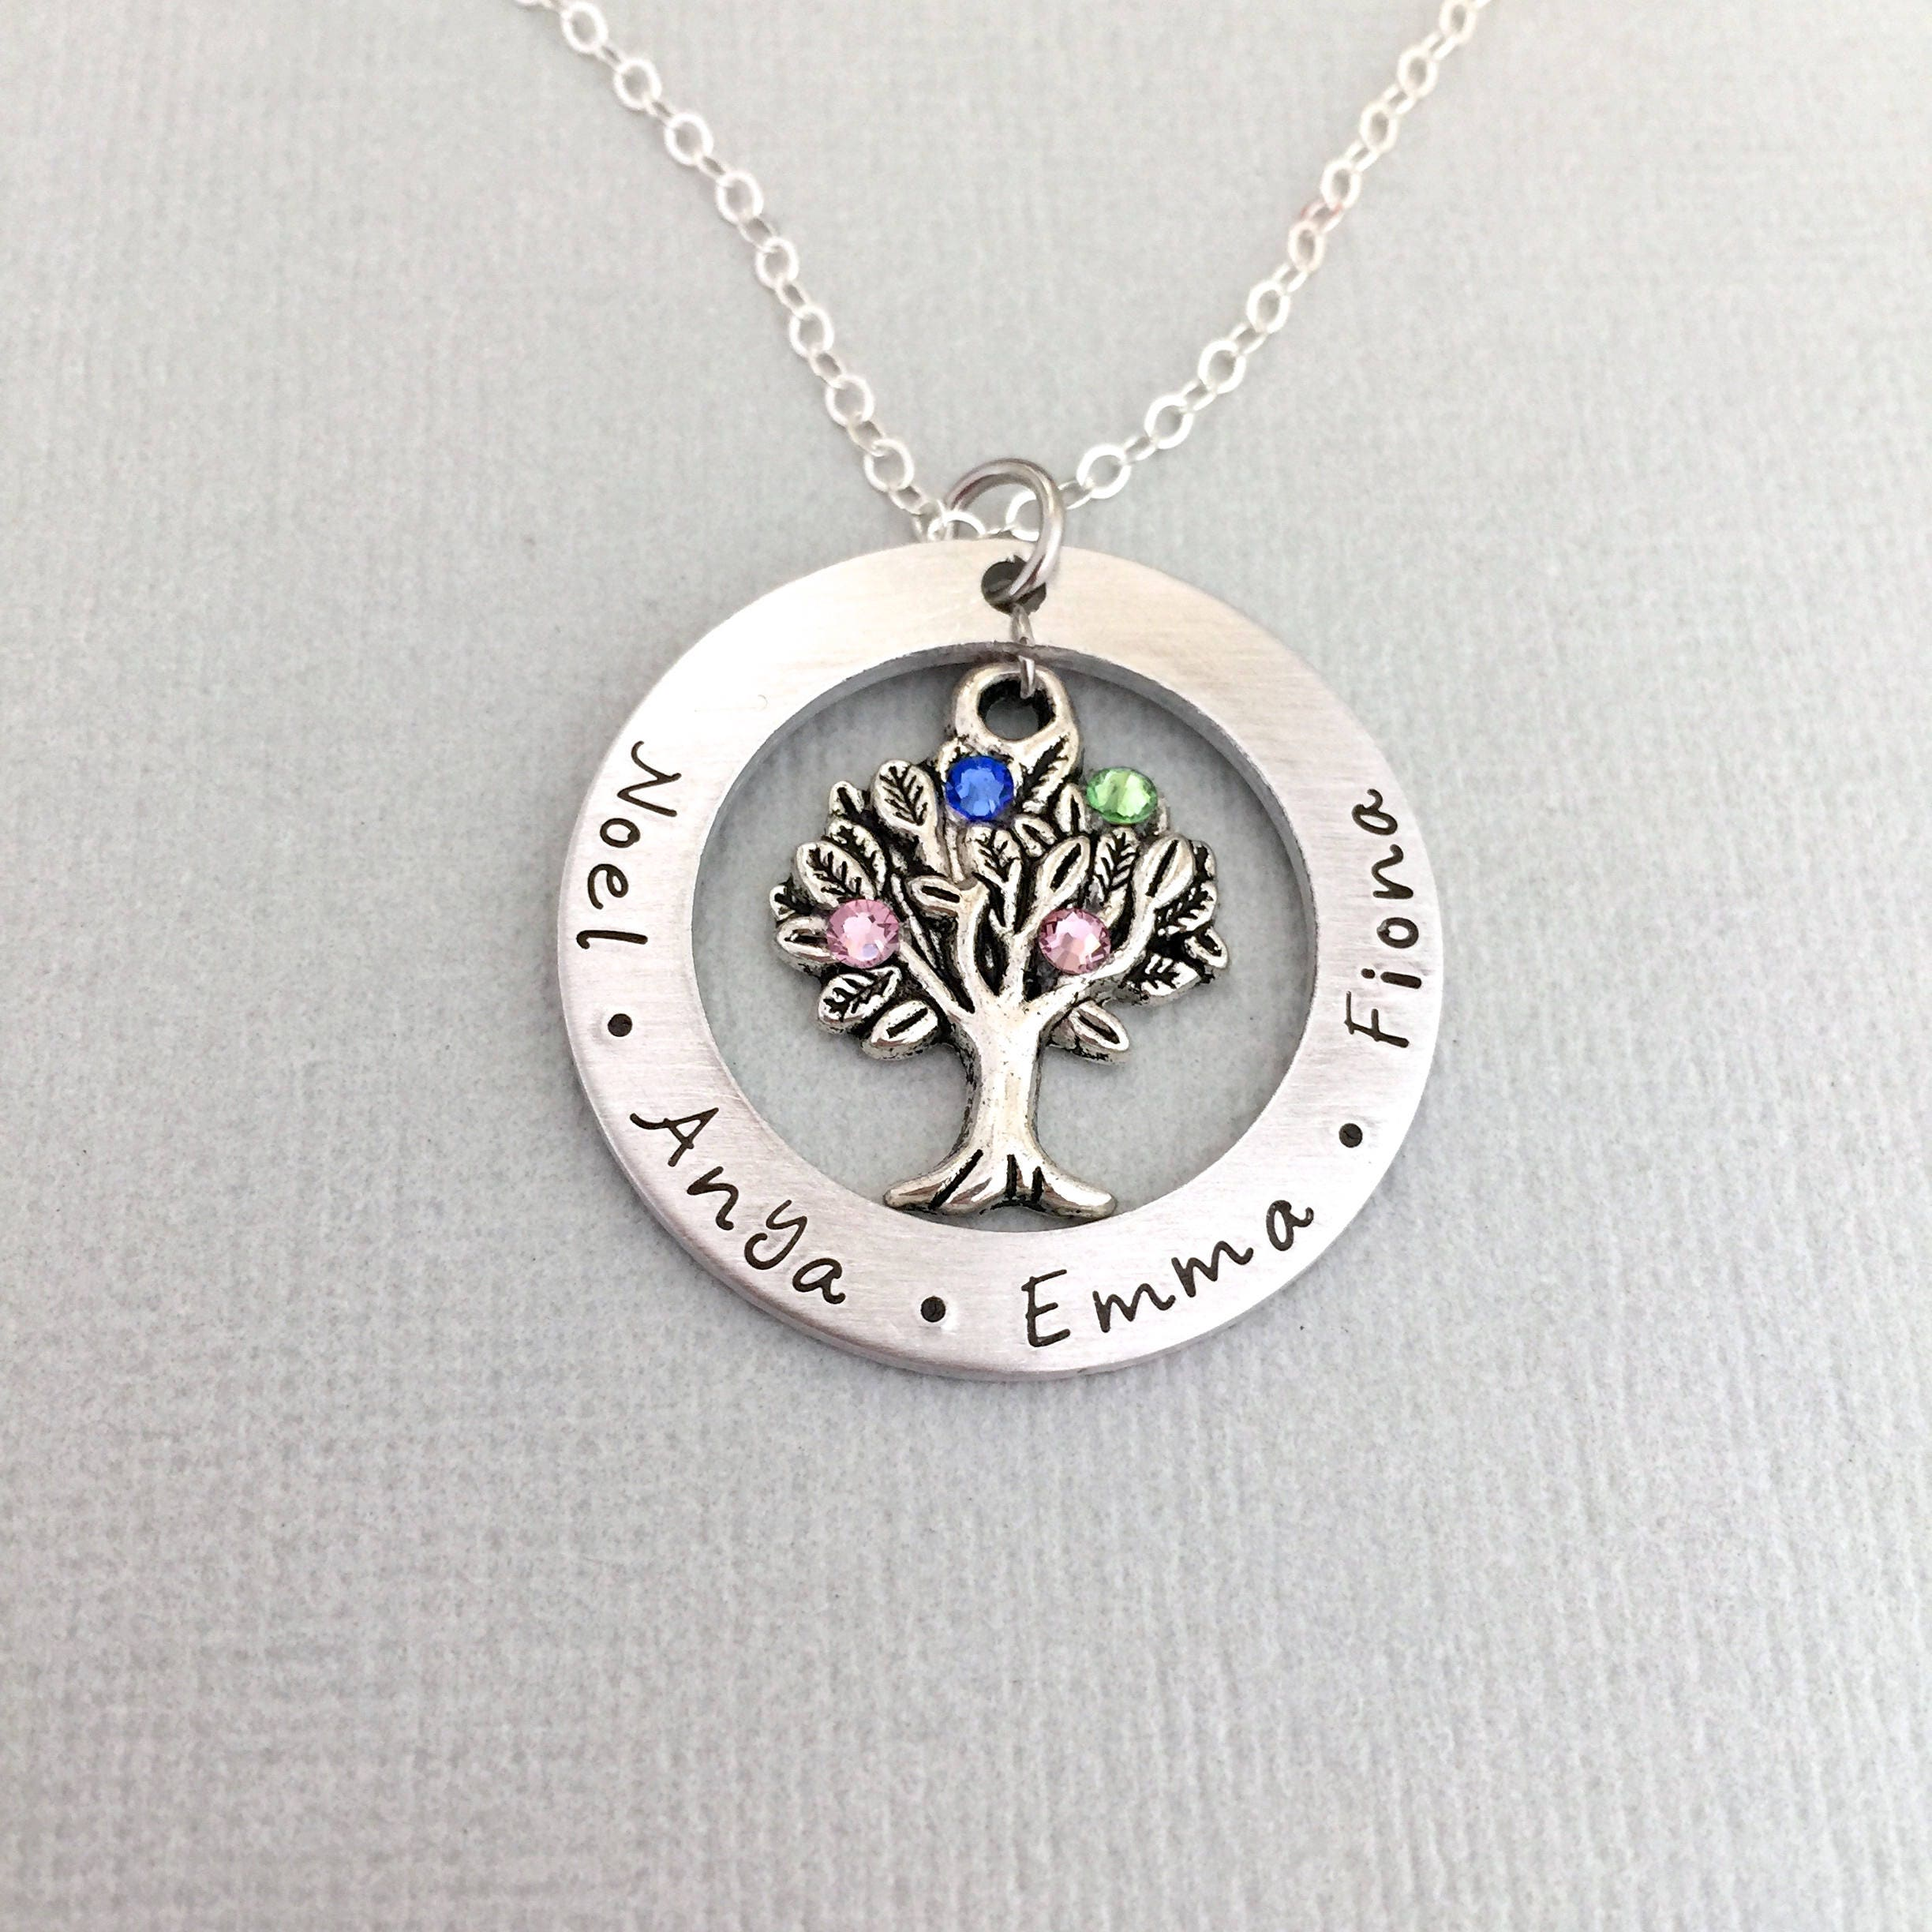 p of lockets s birthstone living memory tree pendant pcs necklace my floating family picture